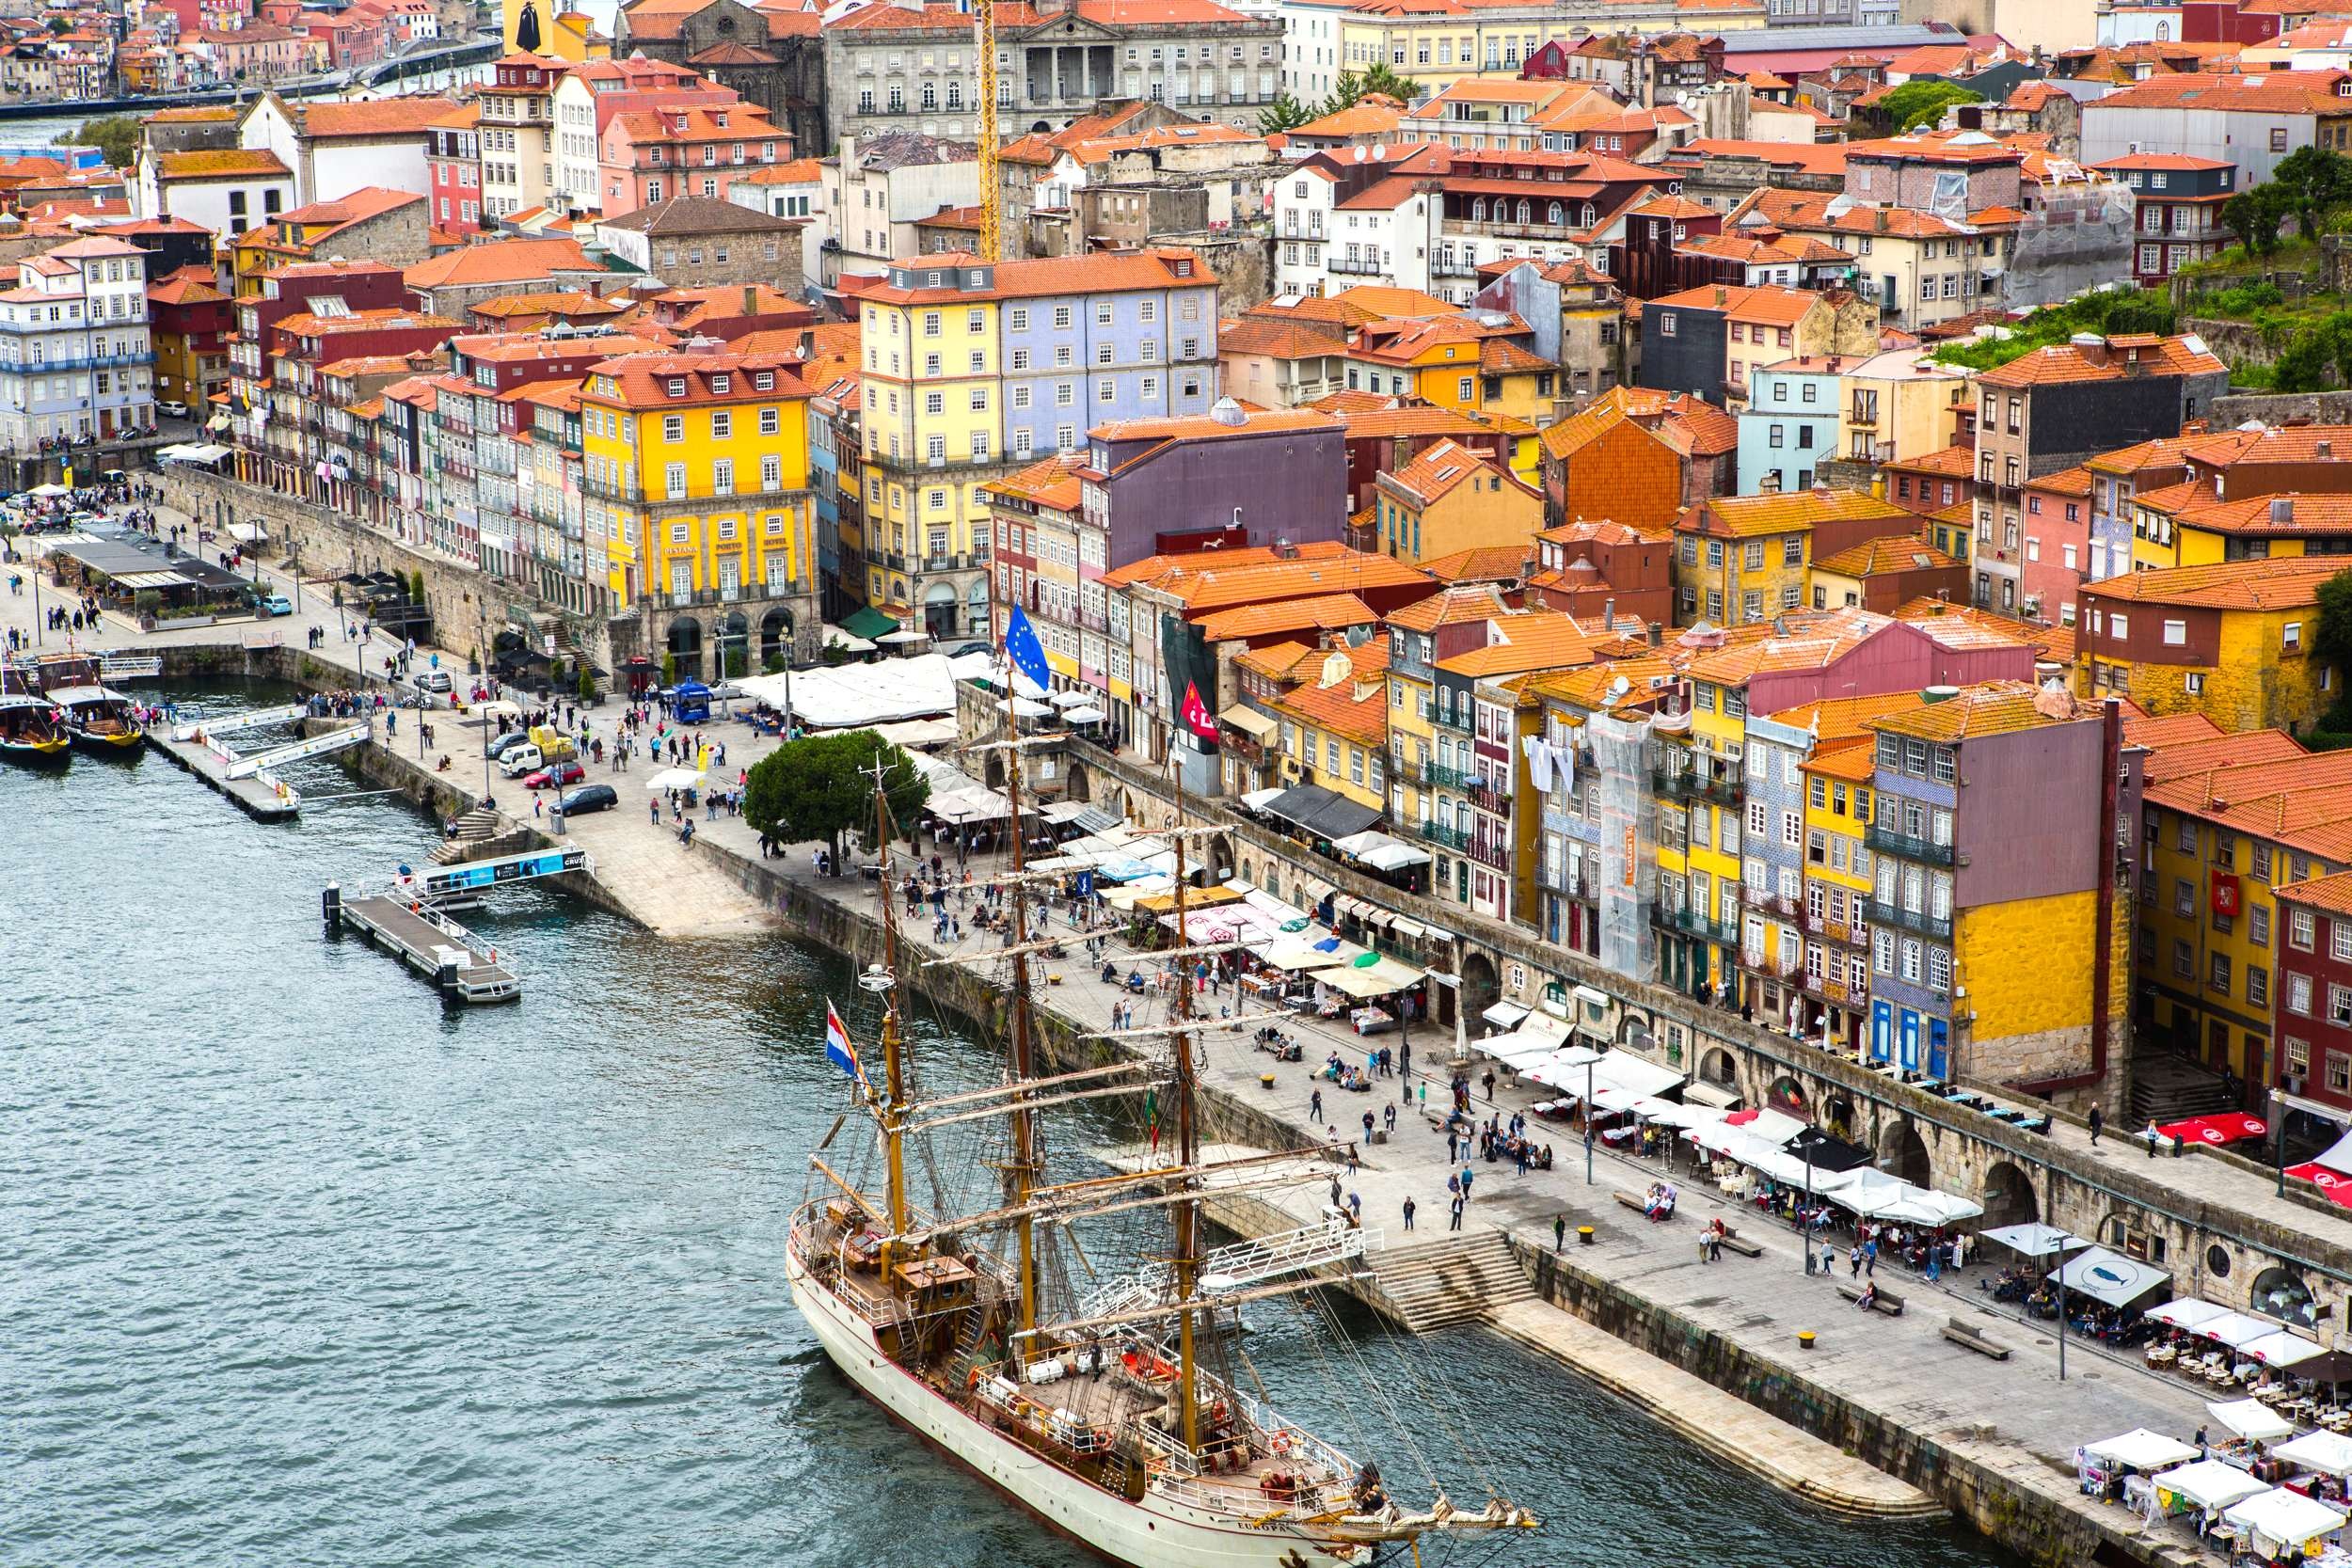 Porto's colourful facades attract visitors year round. Photo by Fran Hales